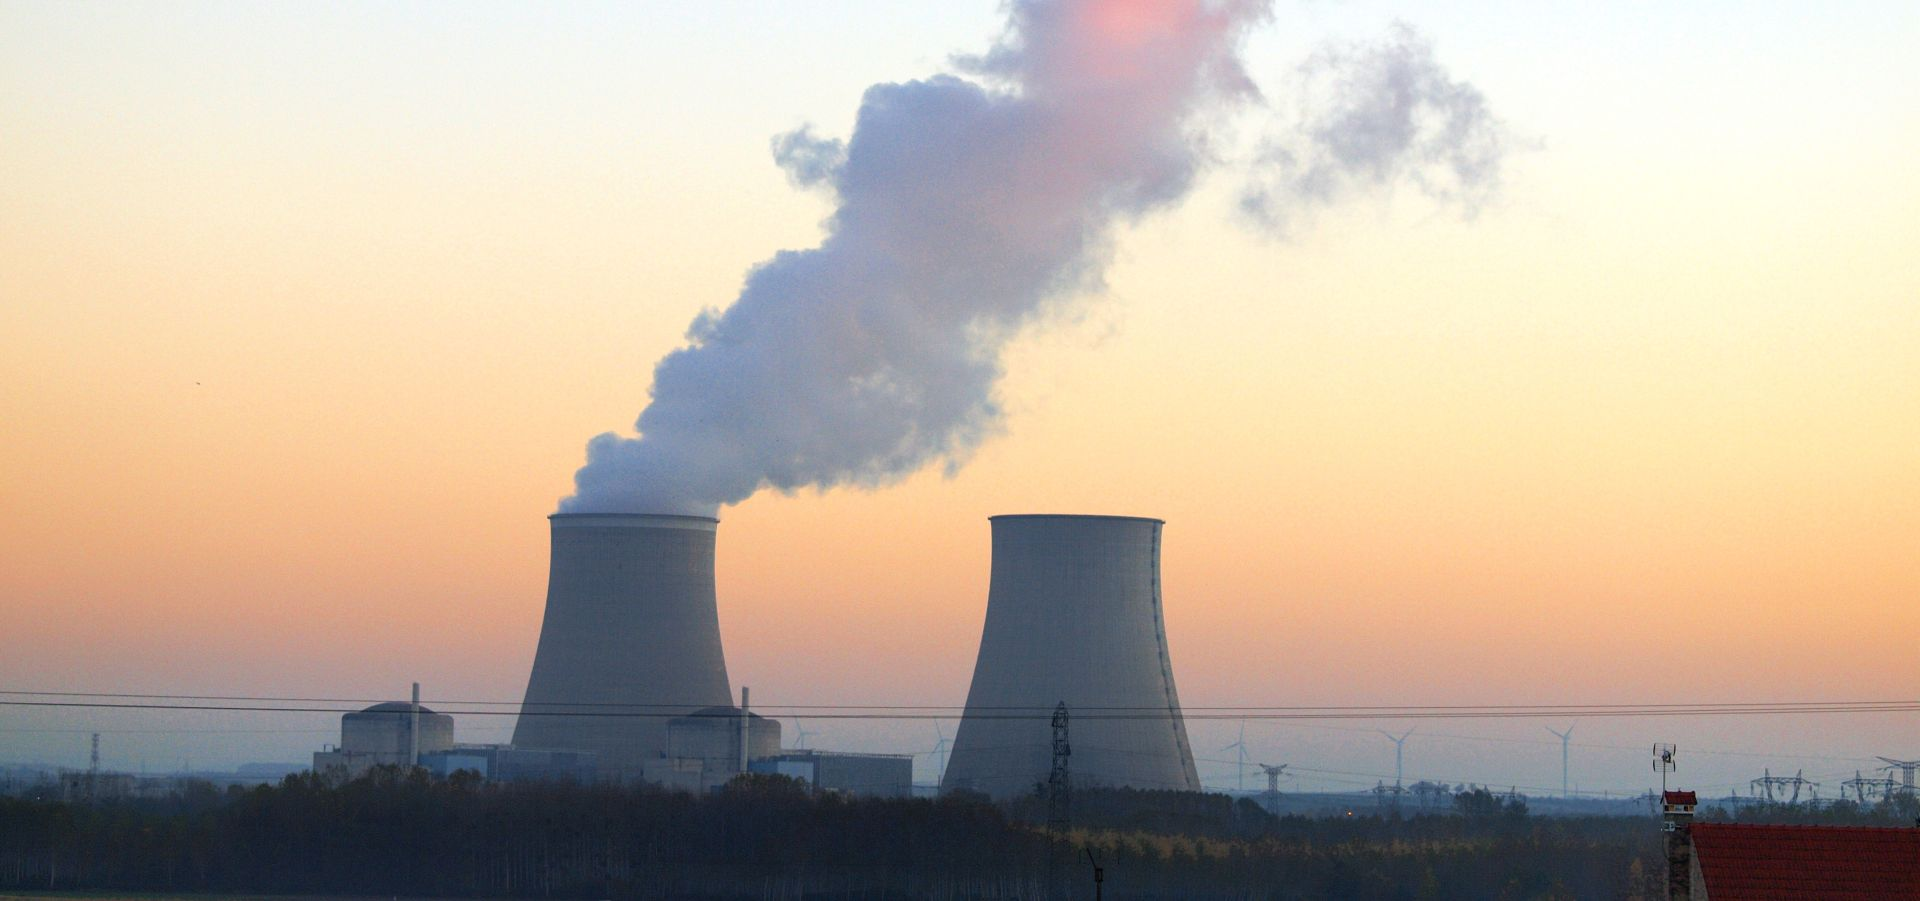 The french nuclear power plant at Nogent seen at sunset